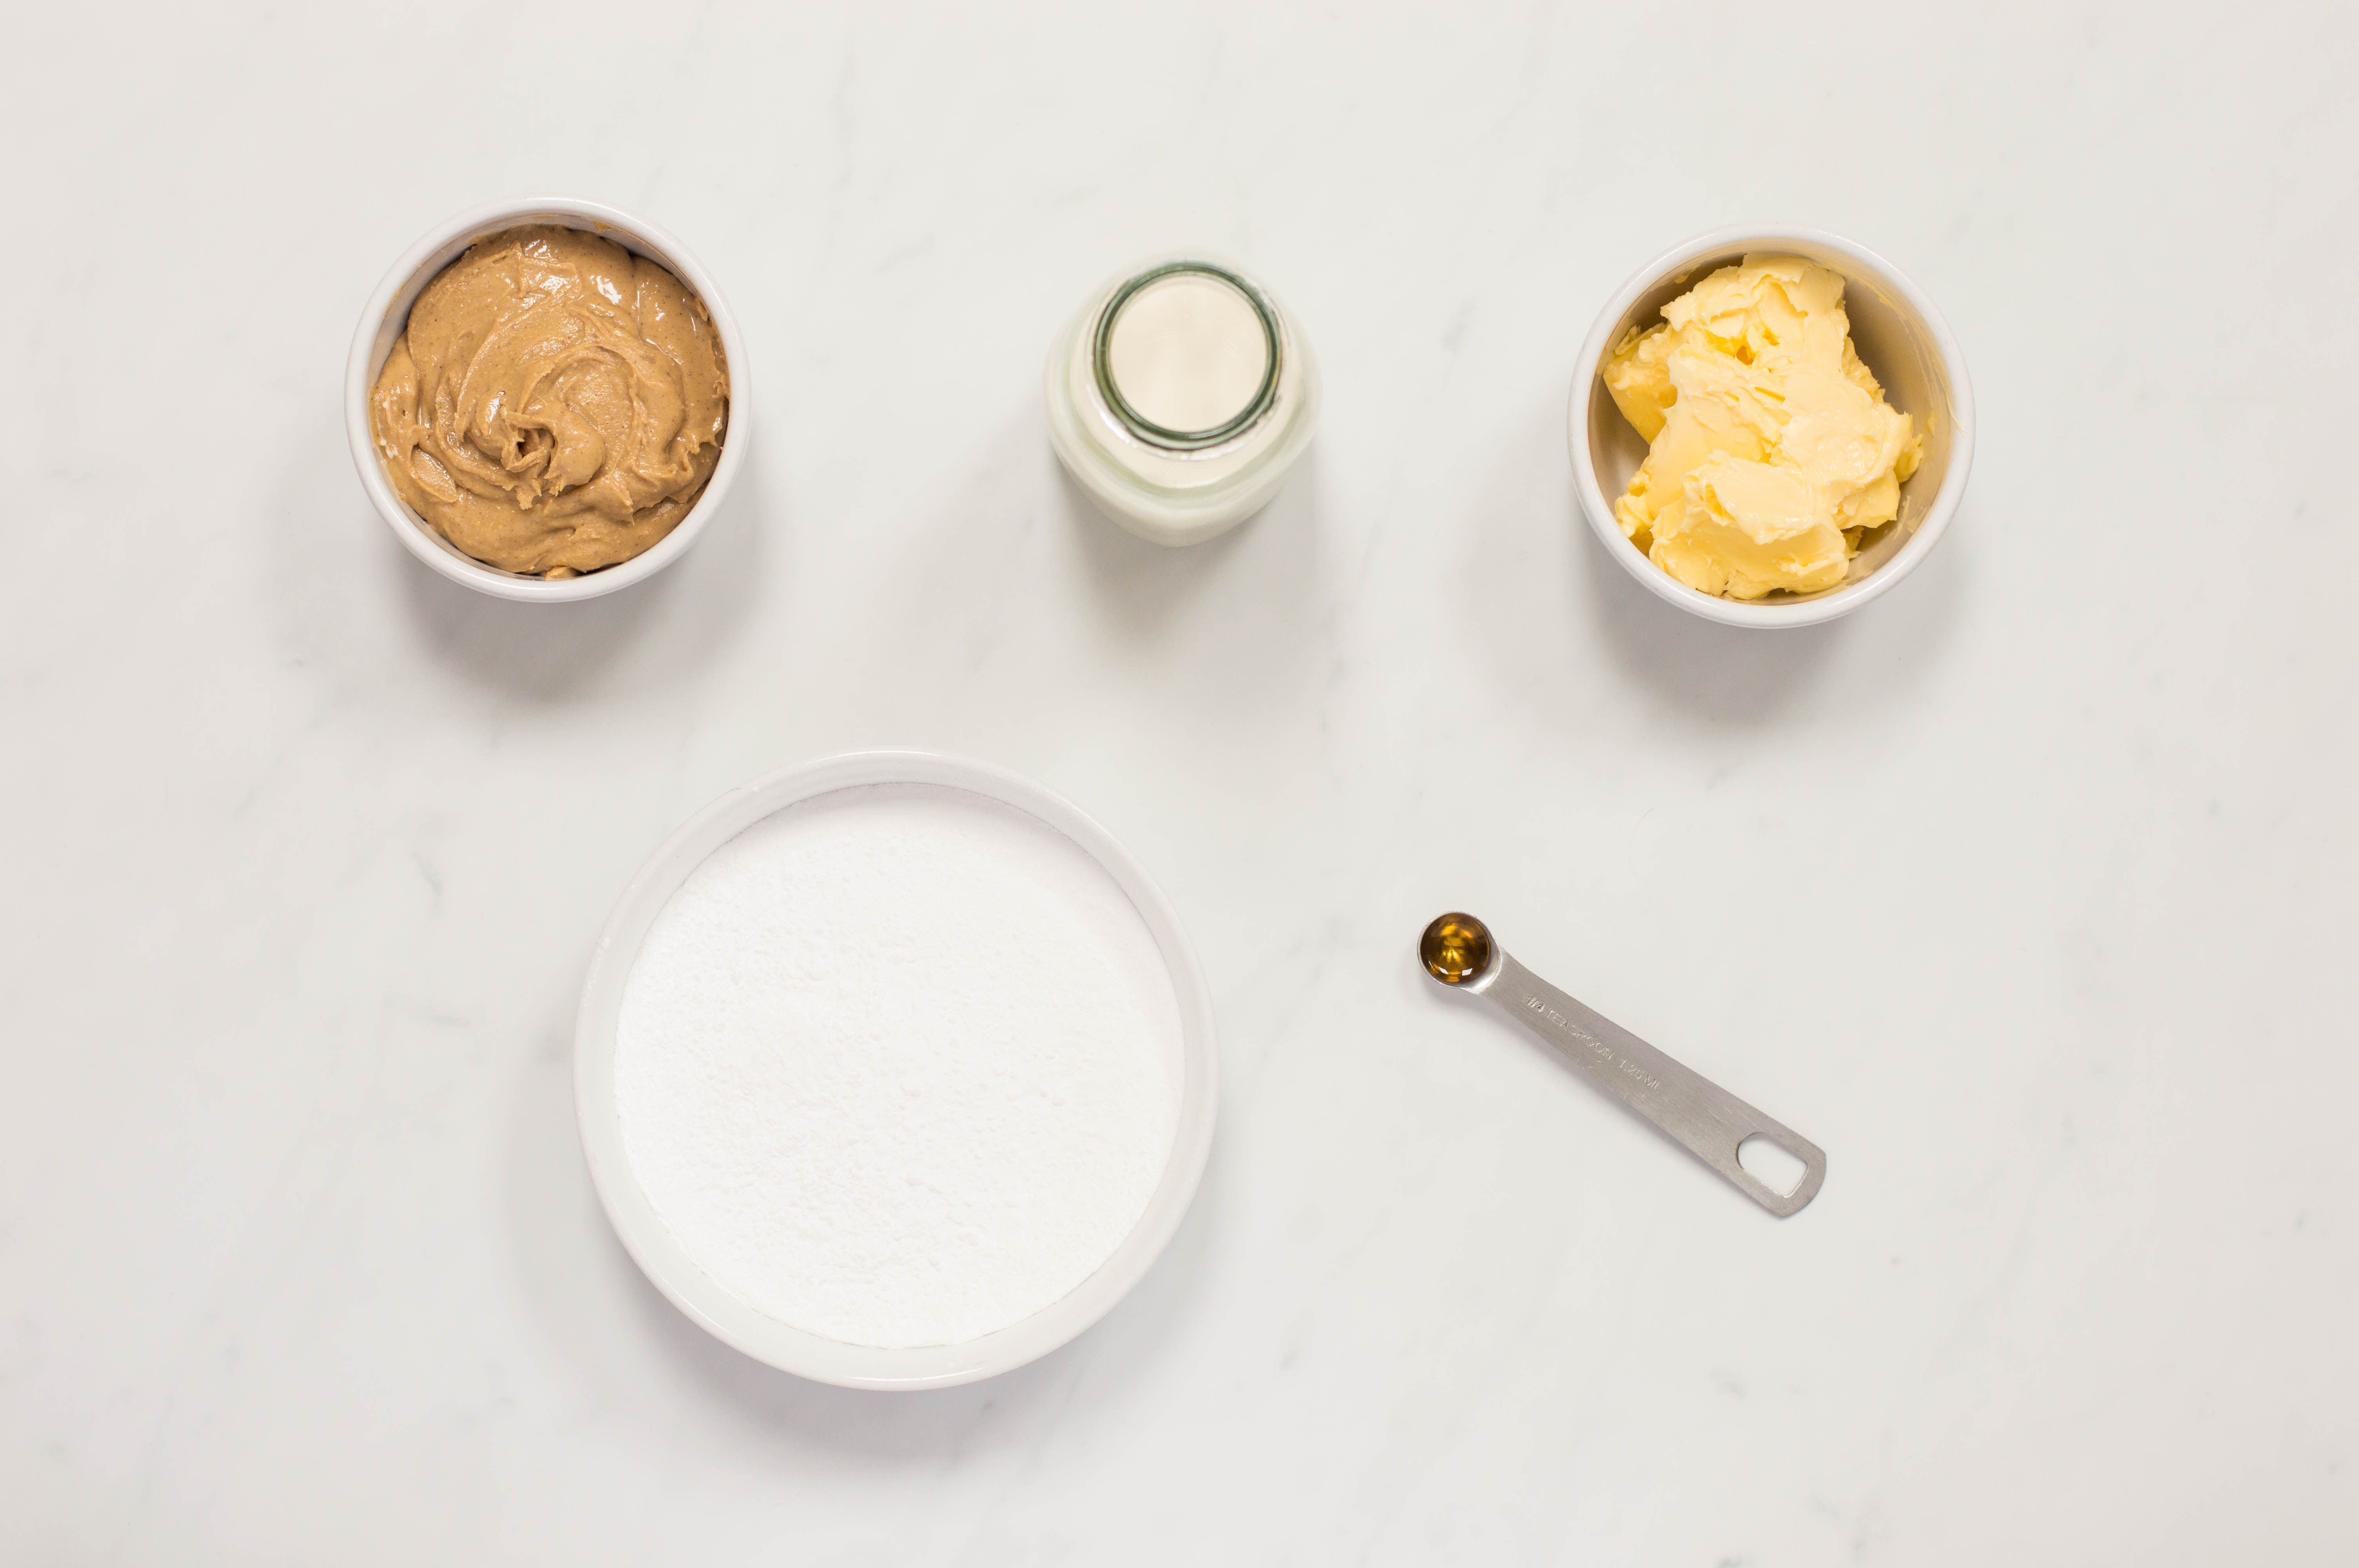 Peanut Butter frosting recipe ingredients